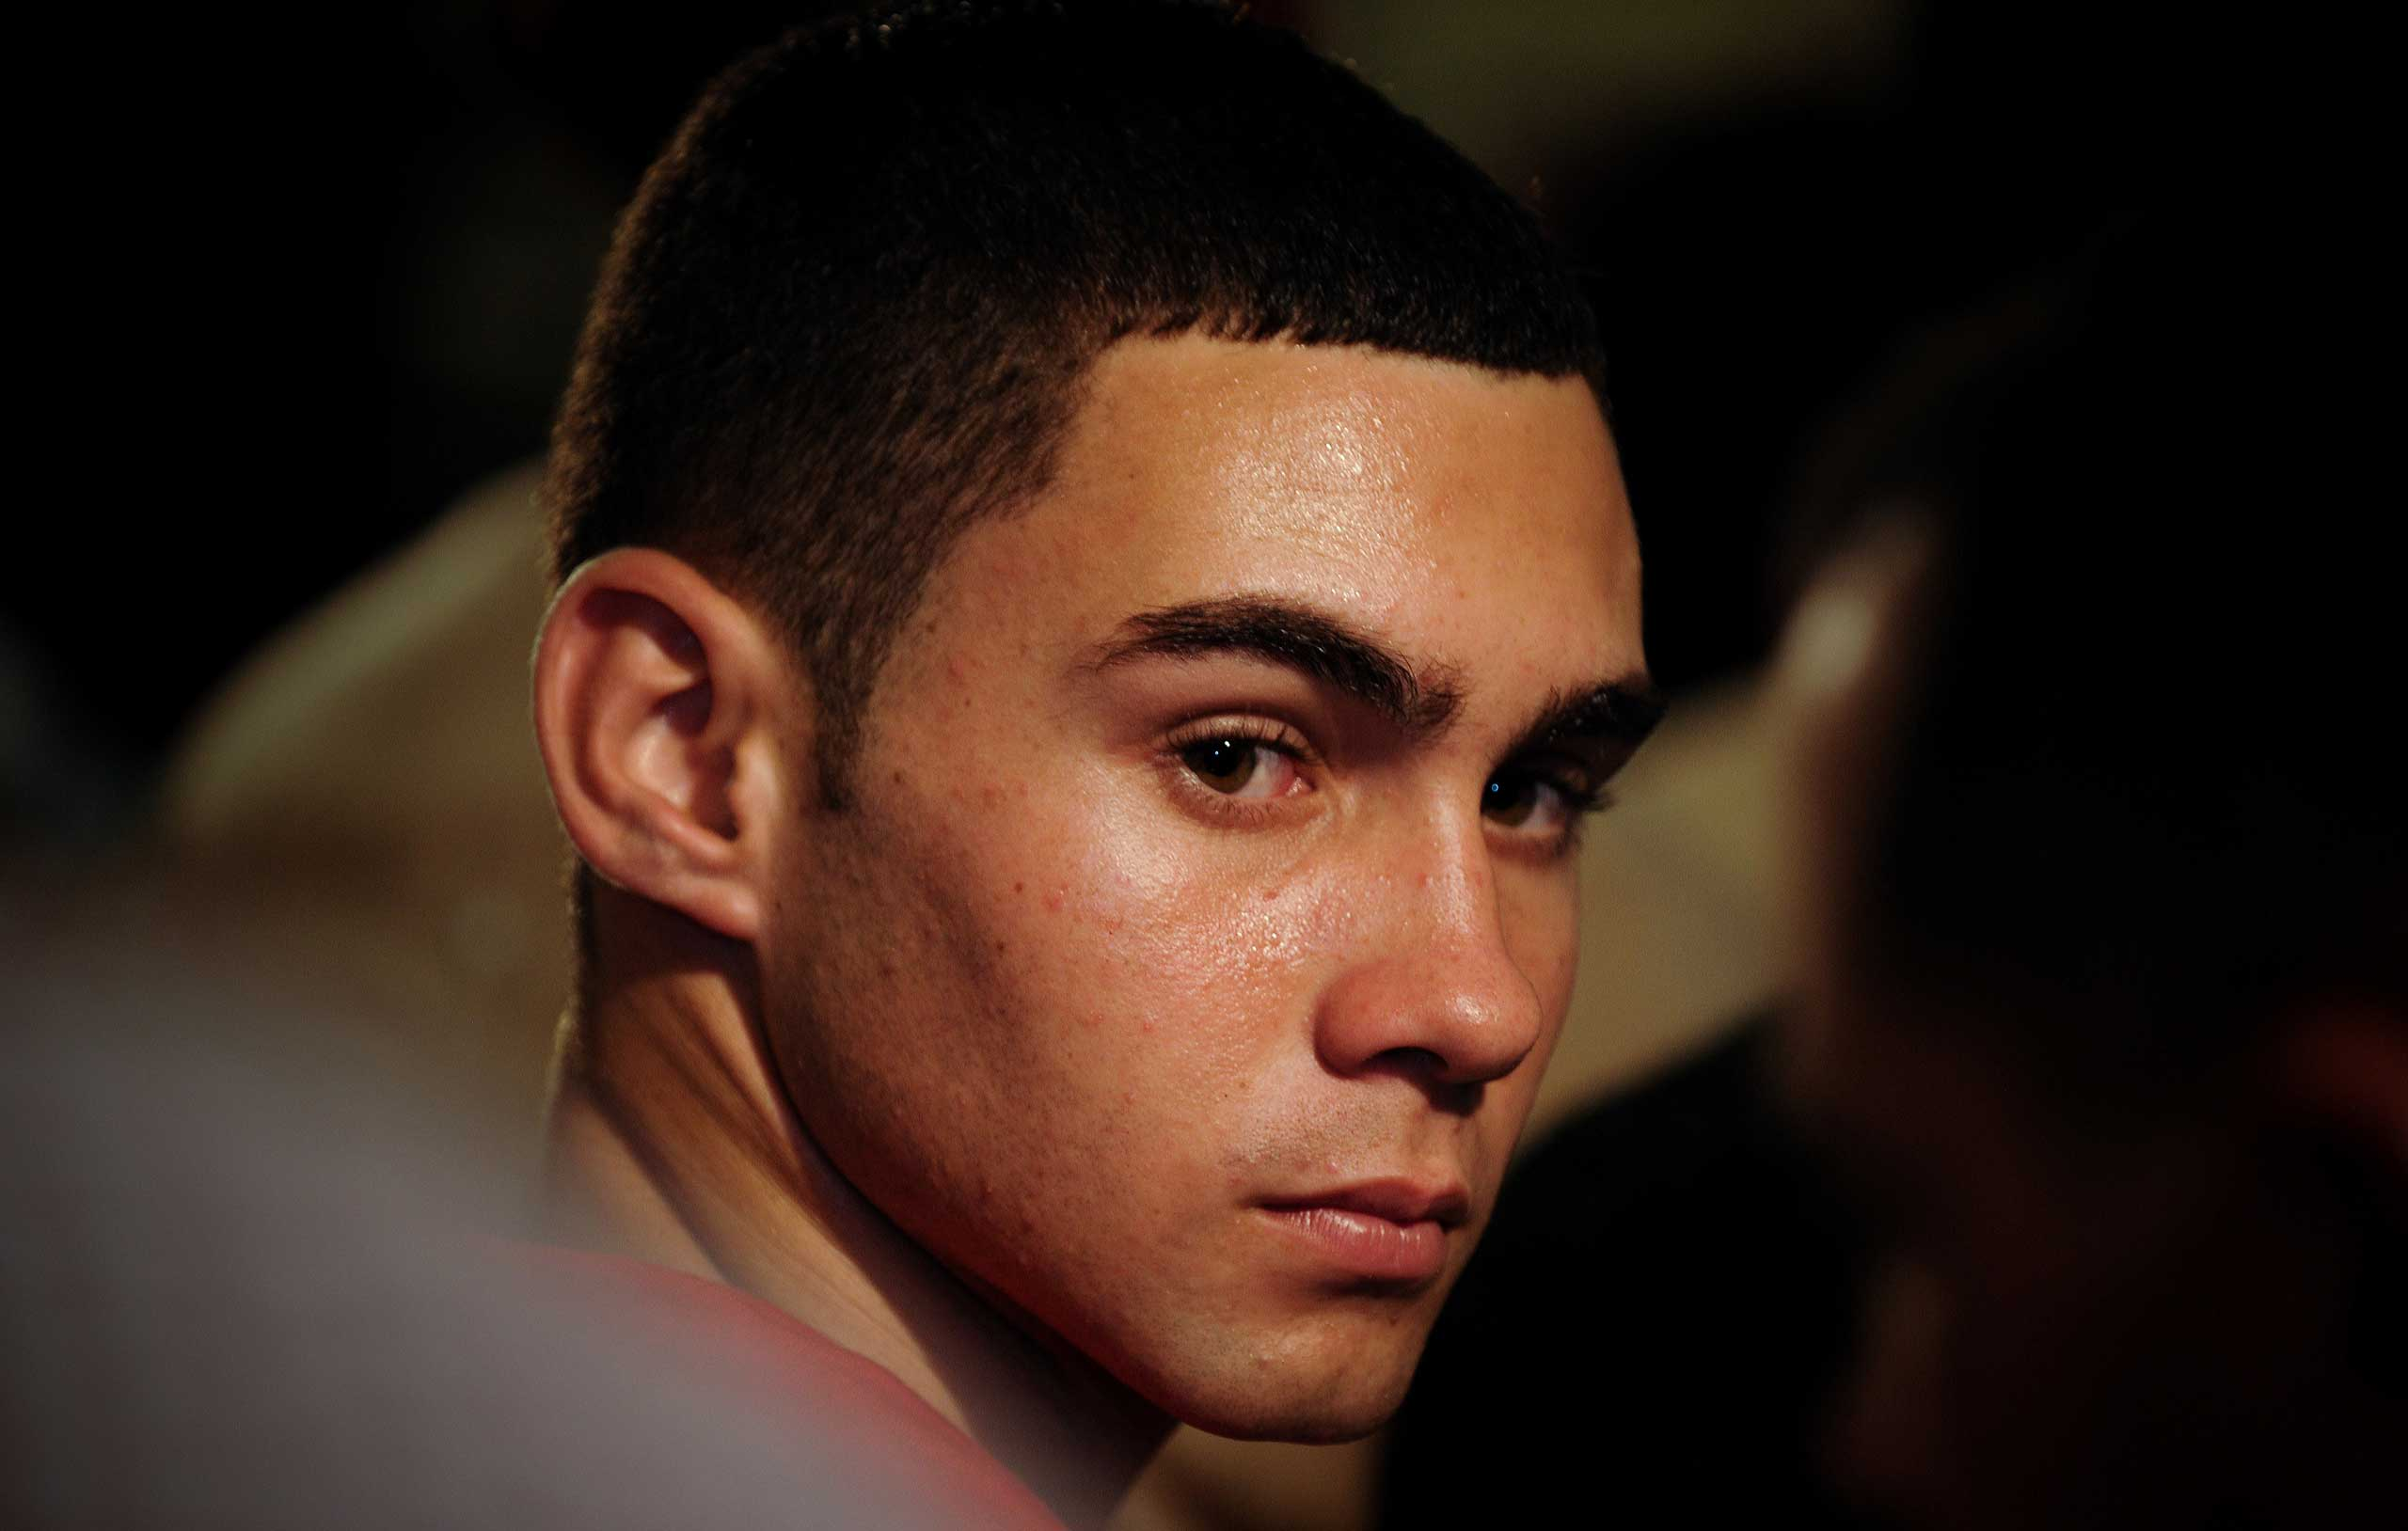 Elian Gonzalez attends an official event with Cuba's President Raul Castro, unseen, in Havana, Wednesday, June 30, 2010.